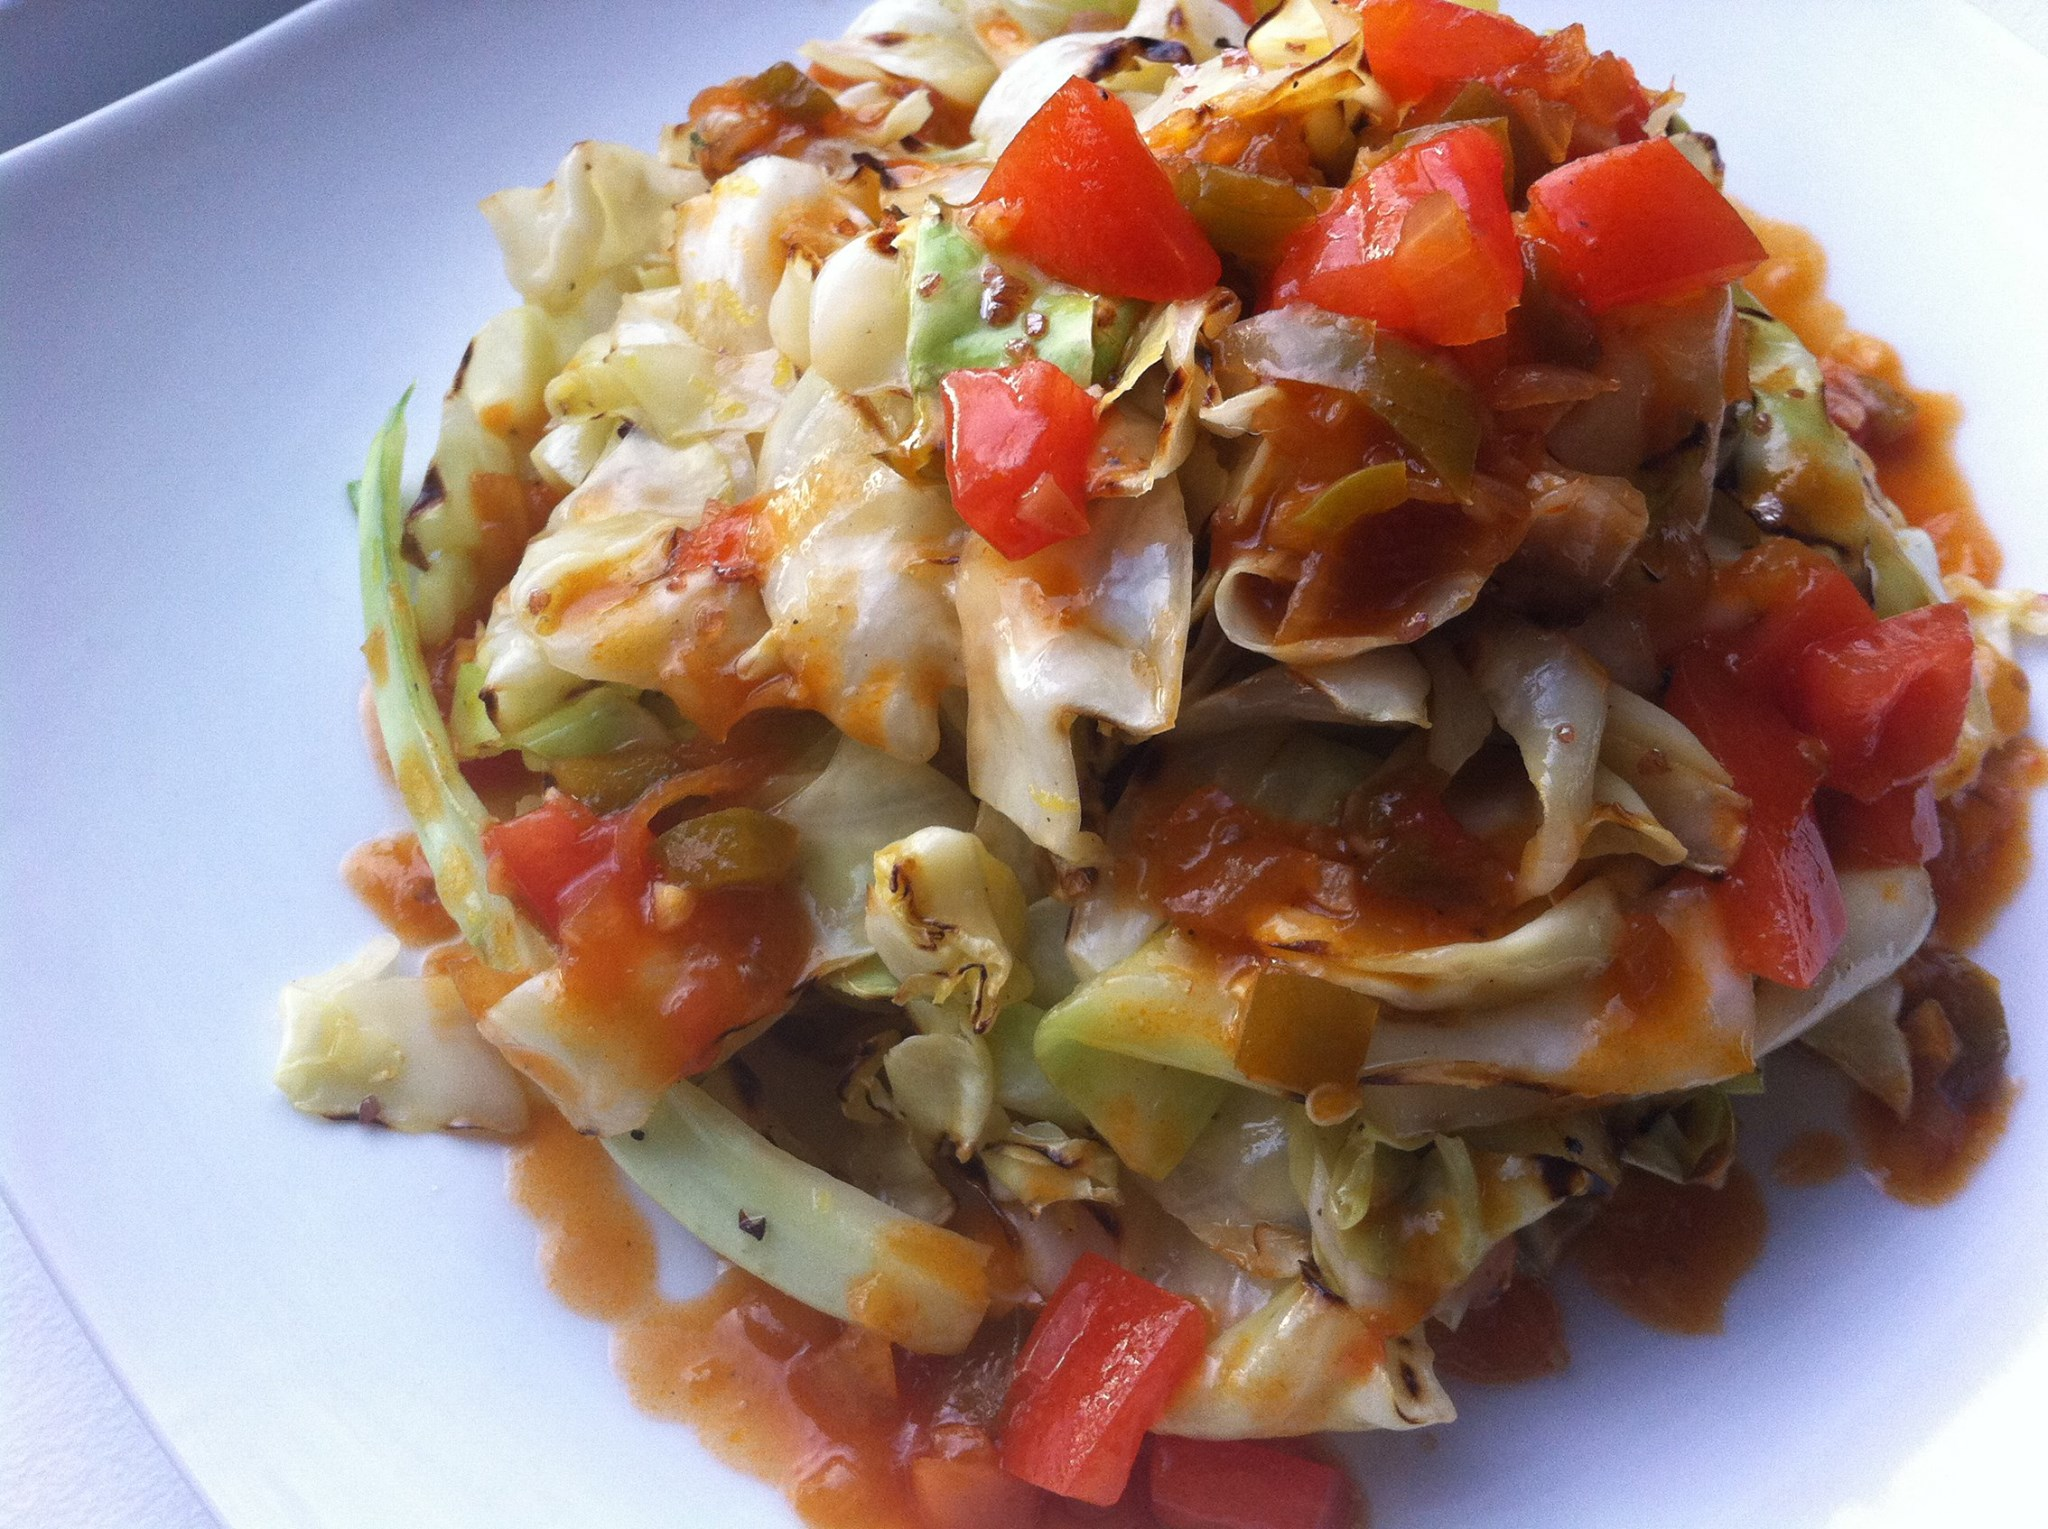 Grilled Cabbage with Dark Rum Lemon Drizzle and Tomato-Onion Relish